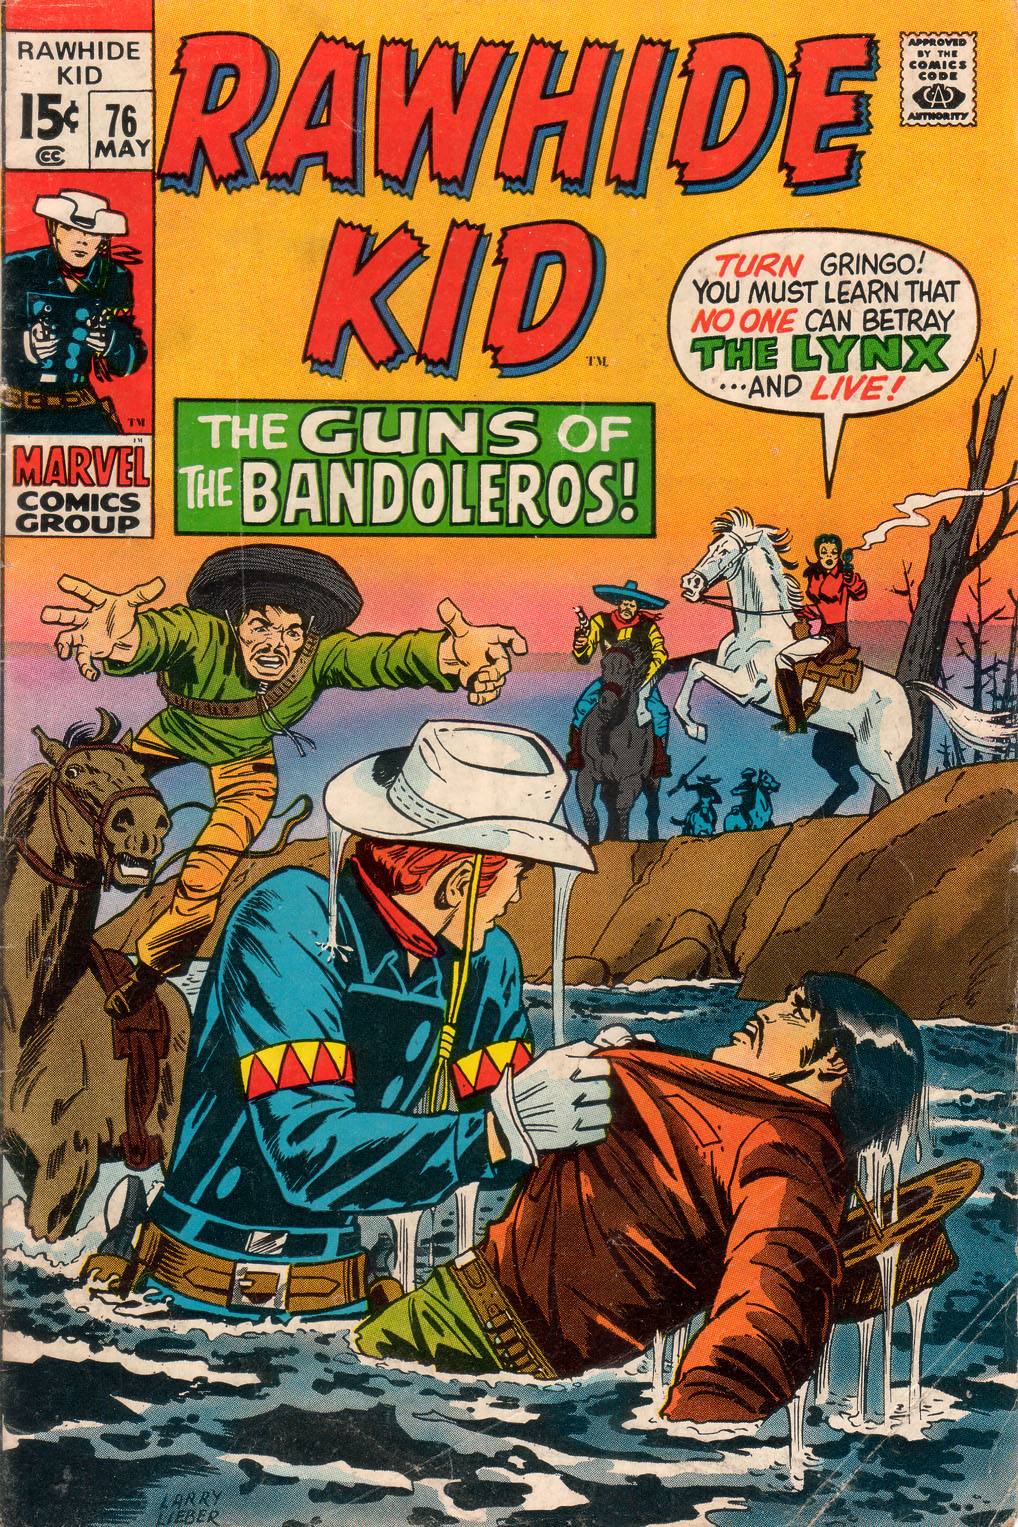 The Rawhide Kid (1955) issue 76 - Page 1